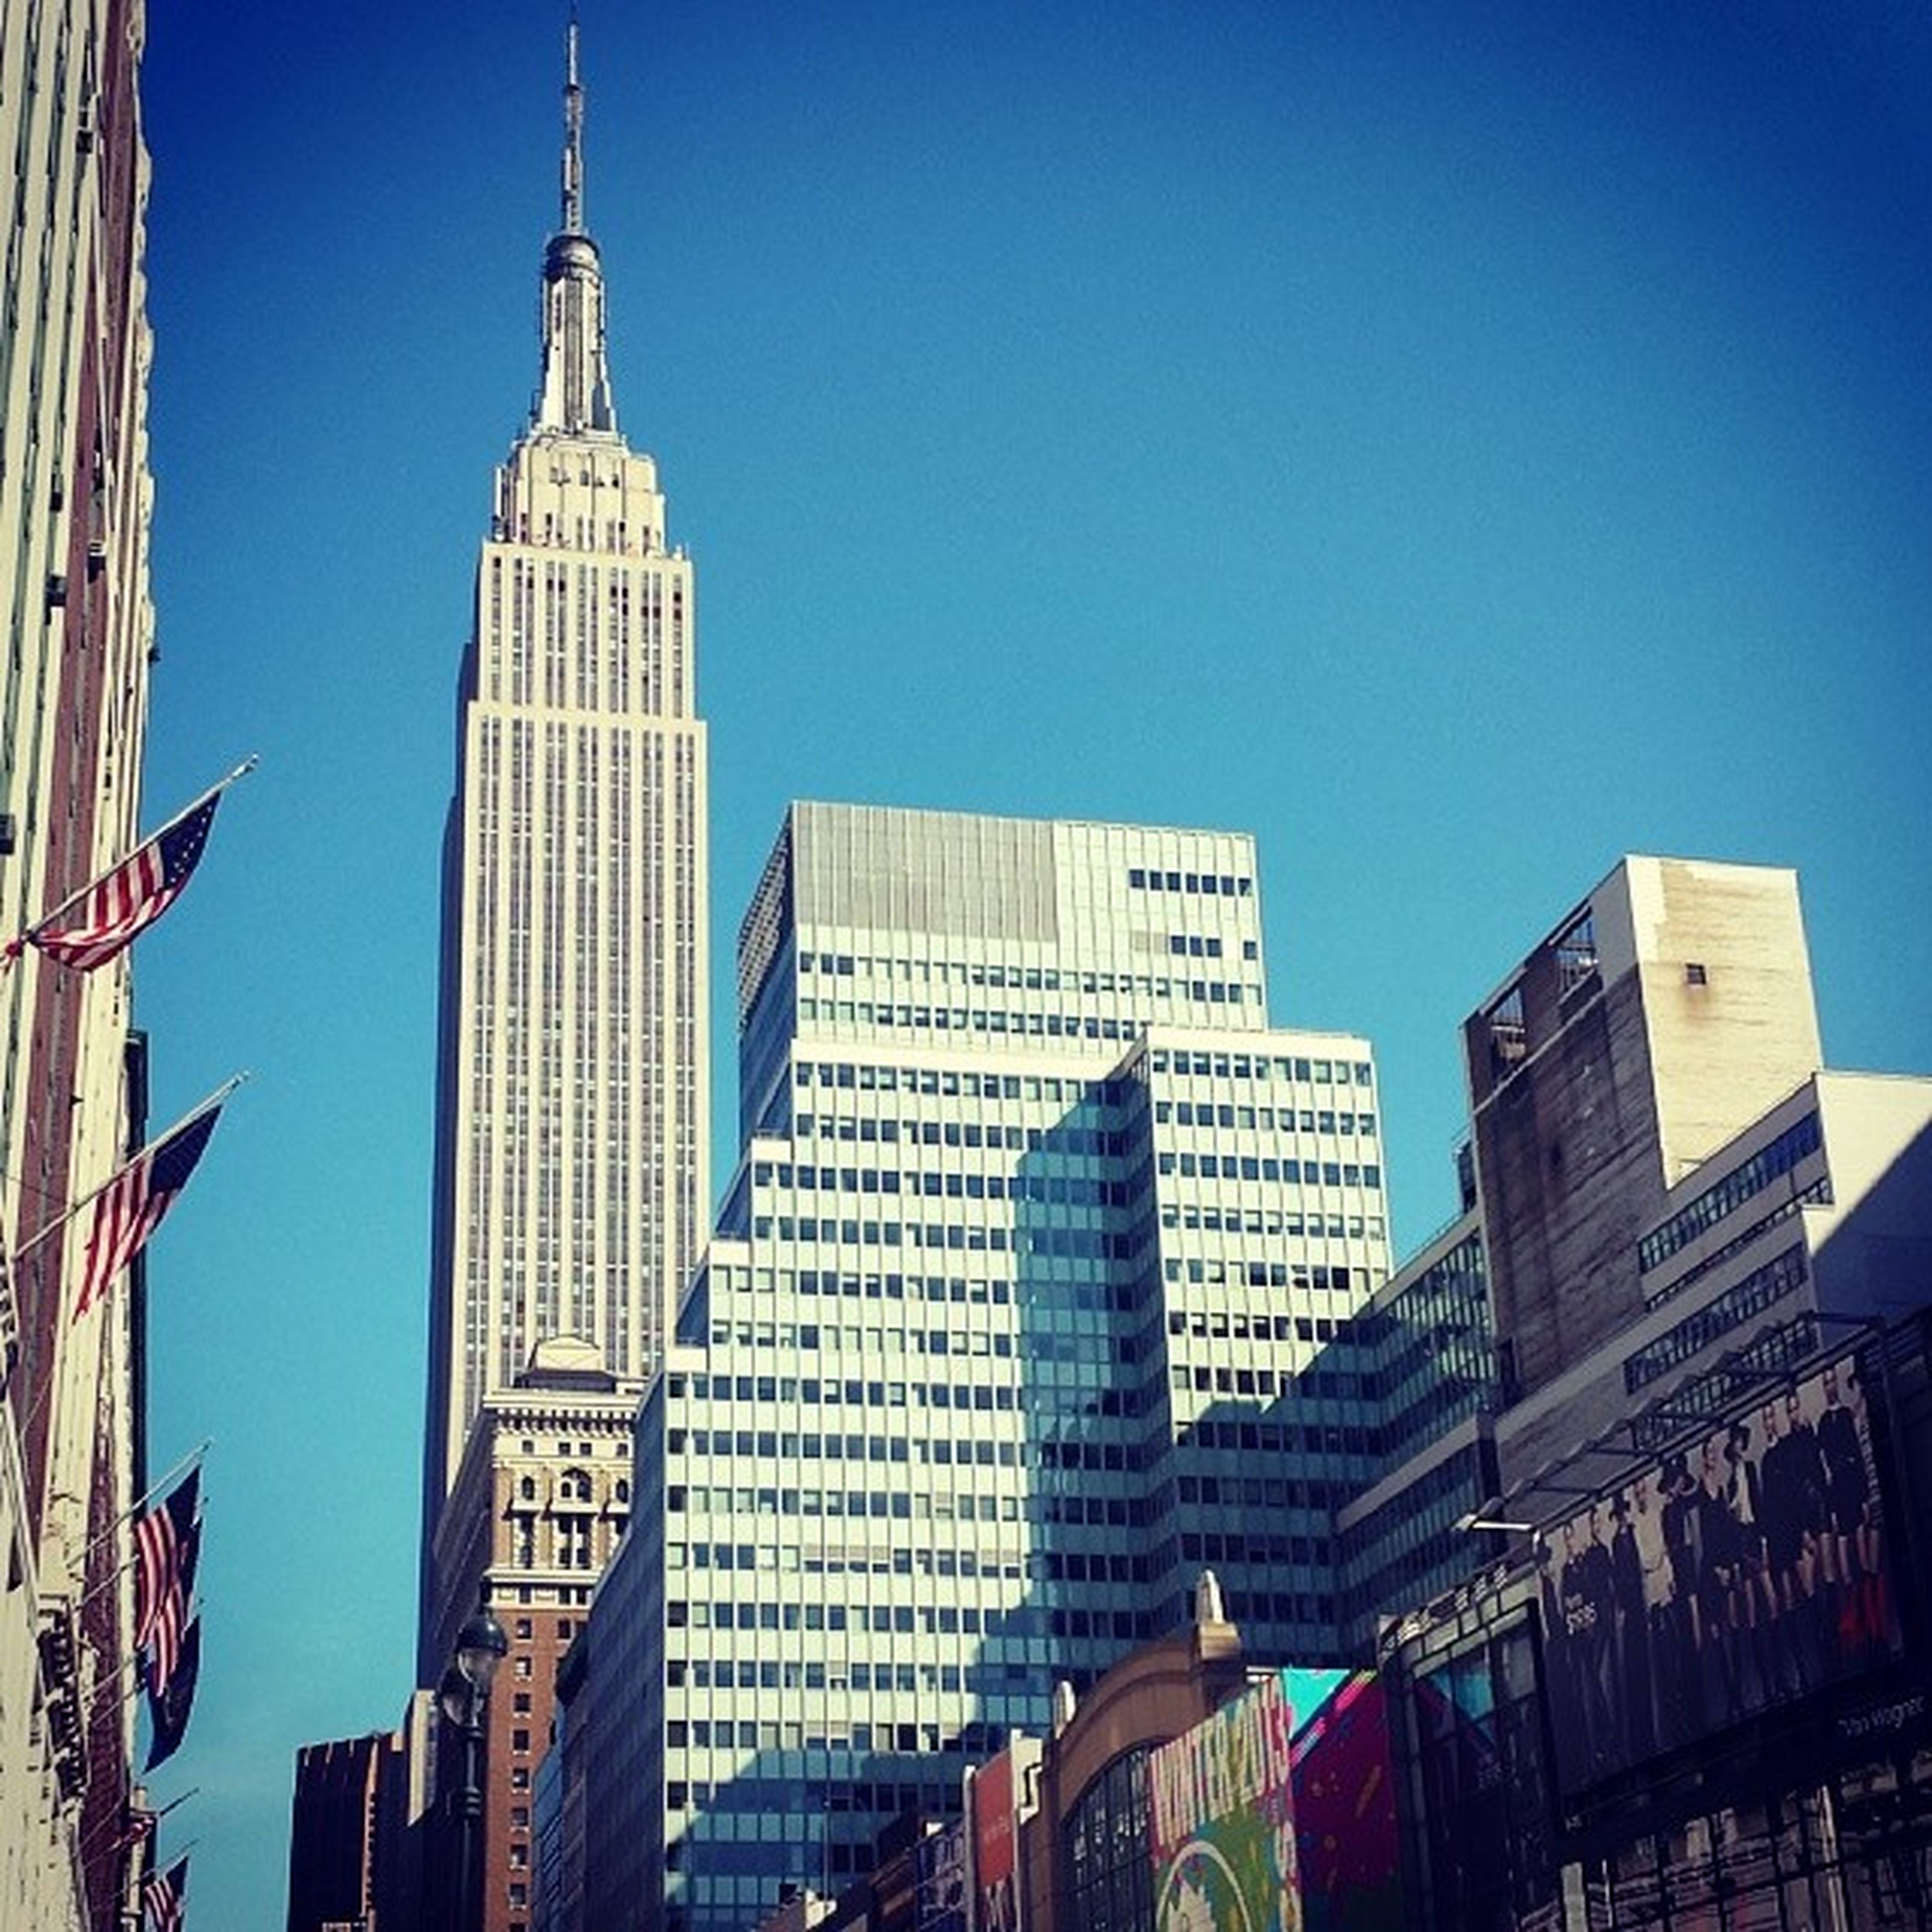 building exterior, architecture, built structure, clear sky, skyscraper, low angle view, tall - high, tower, city, modern, office building, blue, copy space, building, tall, capital cities, city life, financial district, travel destinations, outdoors